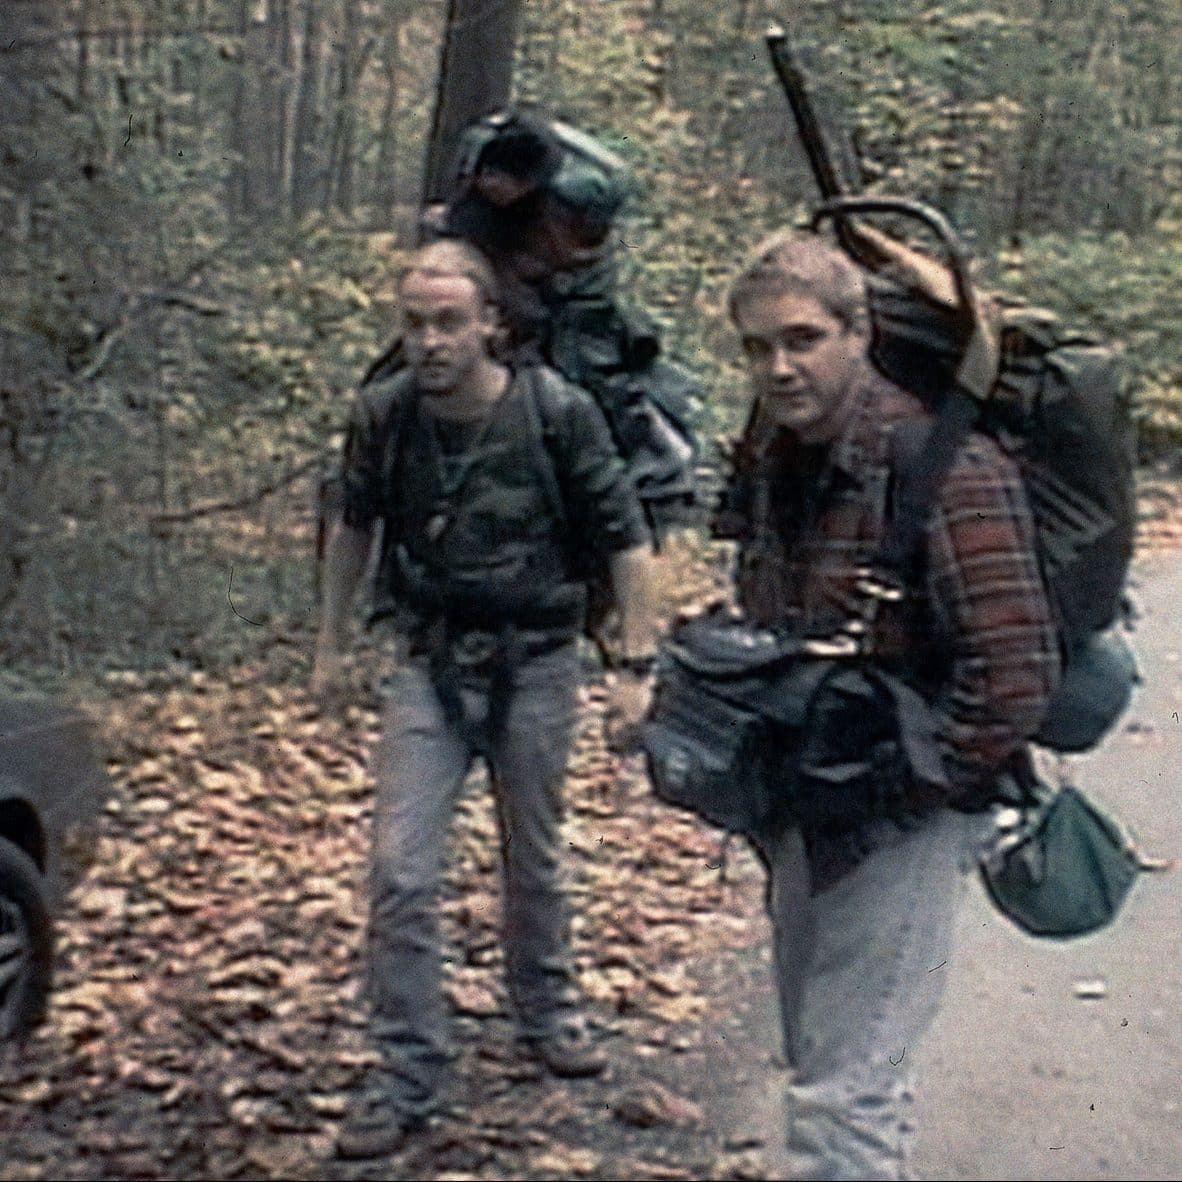 the blair witch project joshua leonard and michael c williams e1572009399193 The Blair Witch Project: 20 Behind-The-Scenes Nuggets That Made It The Most Successful Film Ever